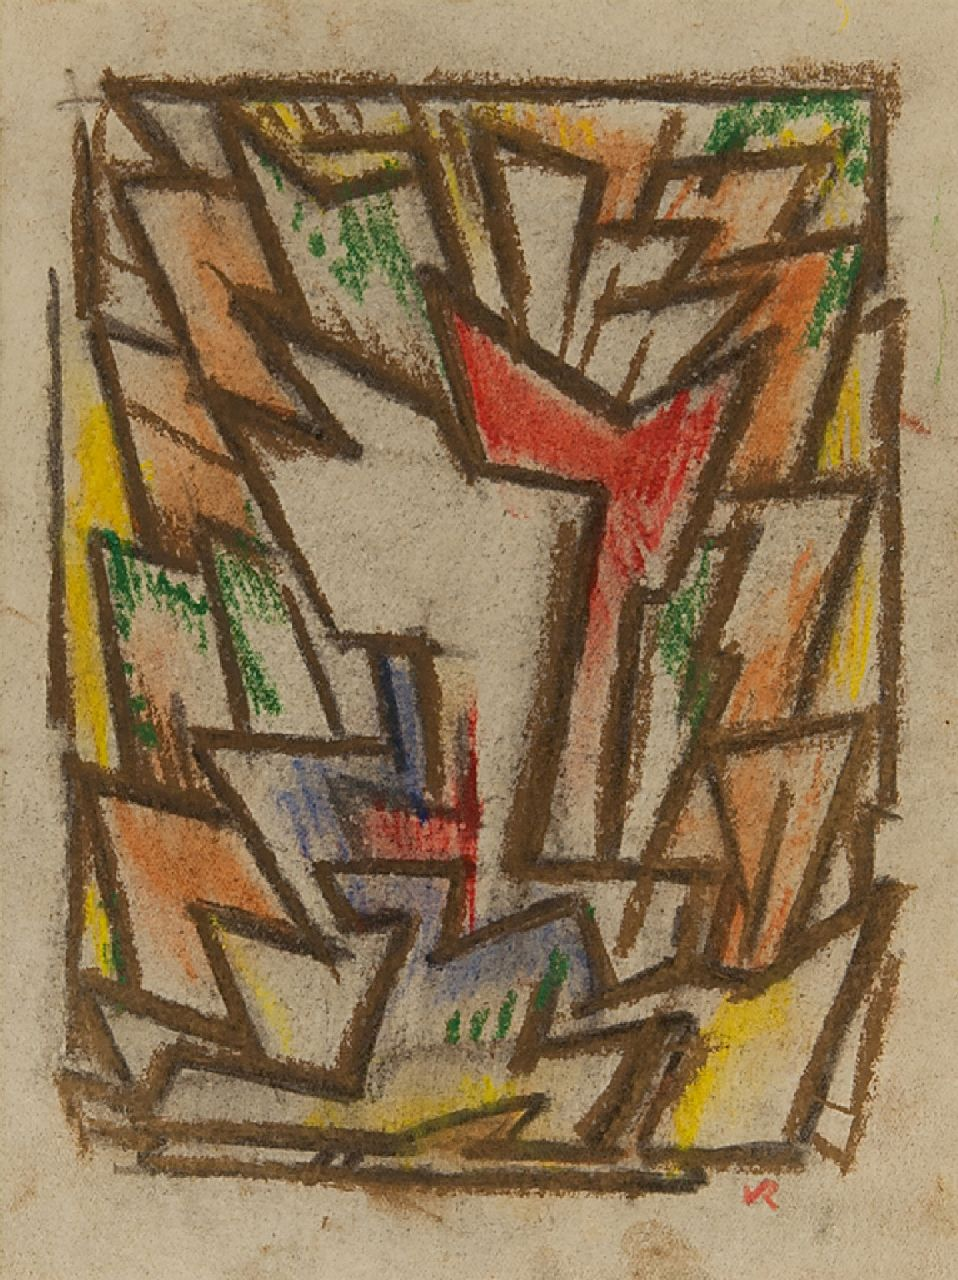 Rees O. van | Otto van Rees | Watercolours and drawings offered for sale | Composition, chalk on paper 17.5 x 14.5 cm, signed l.r. with monogram